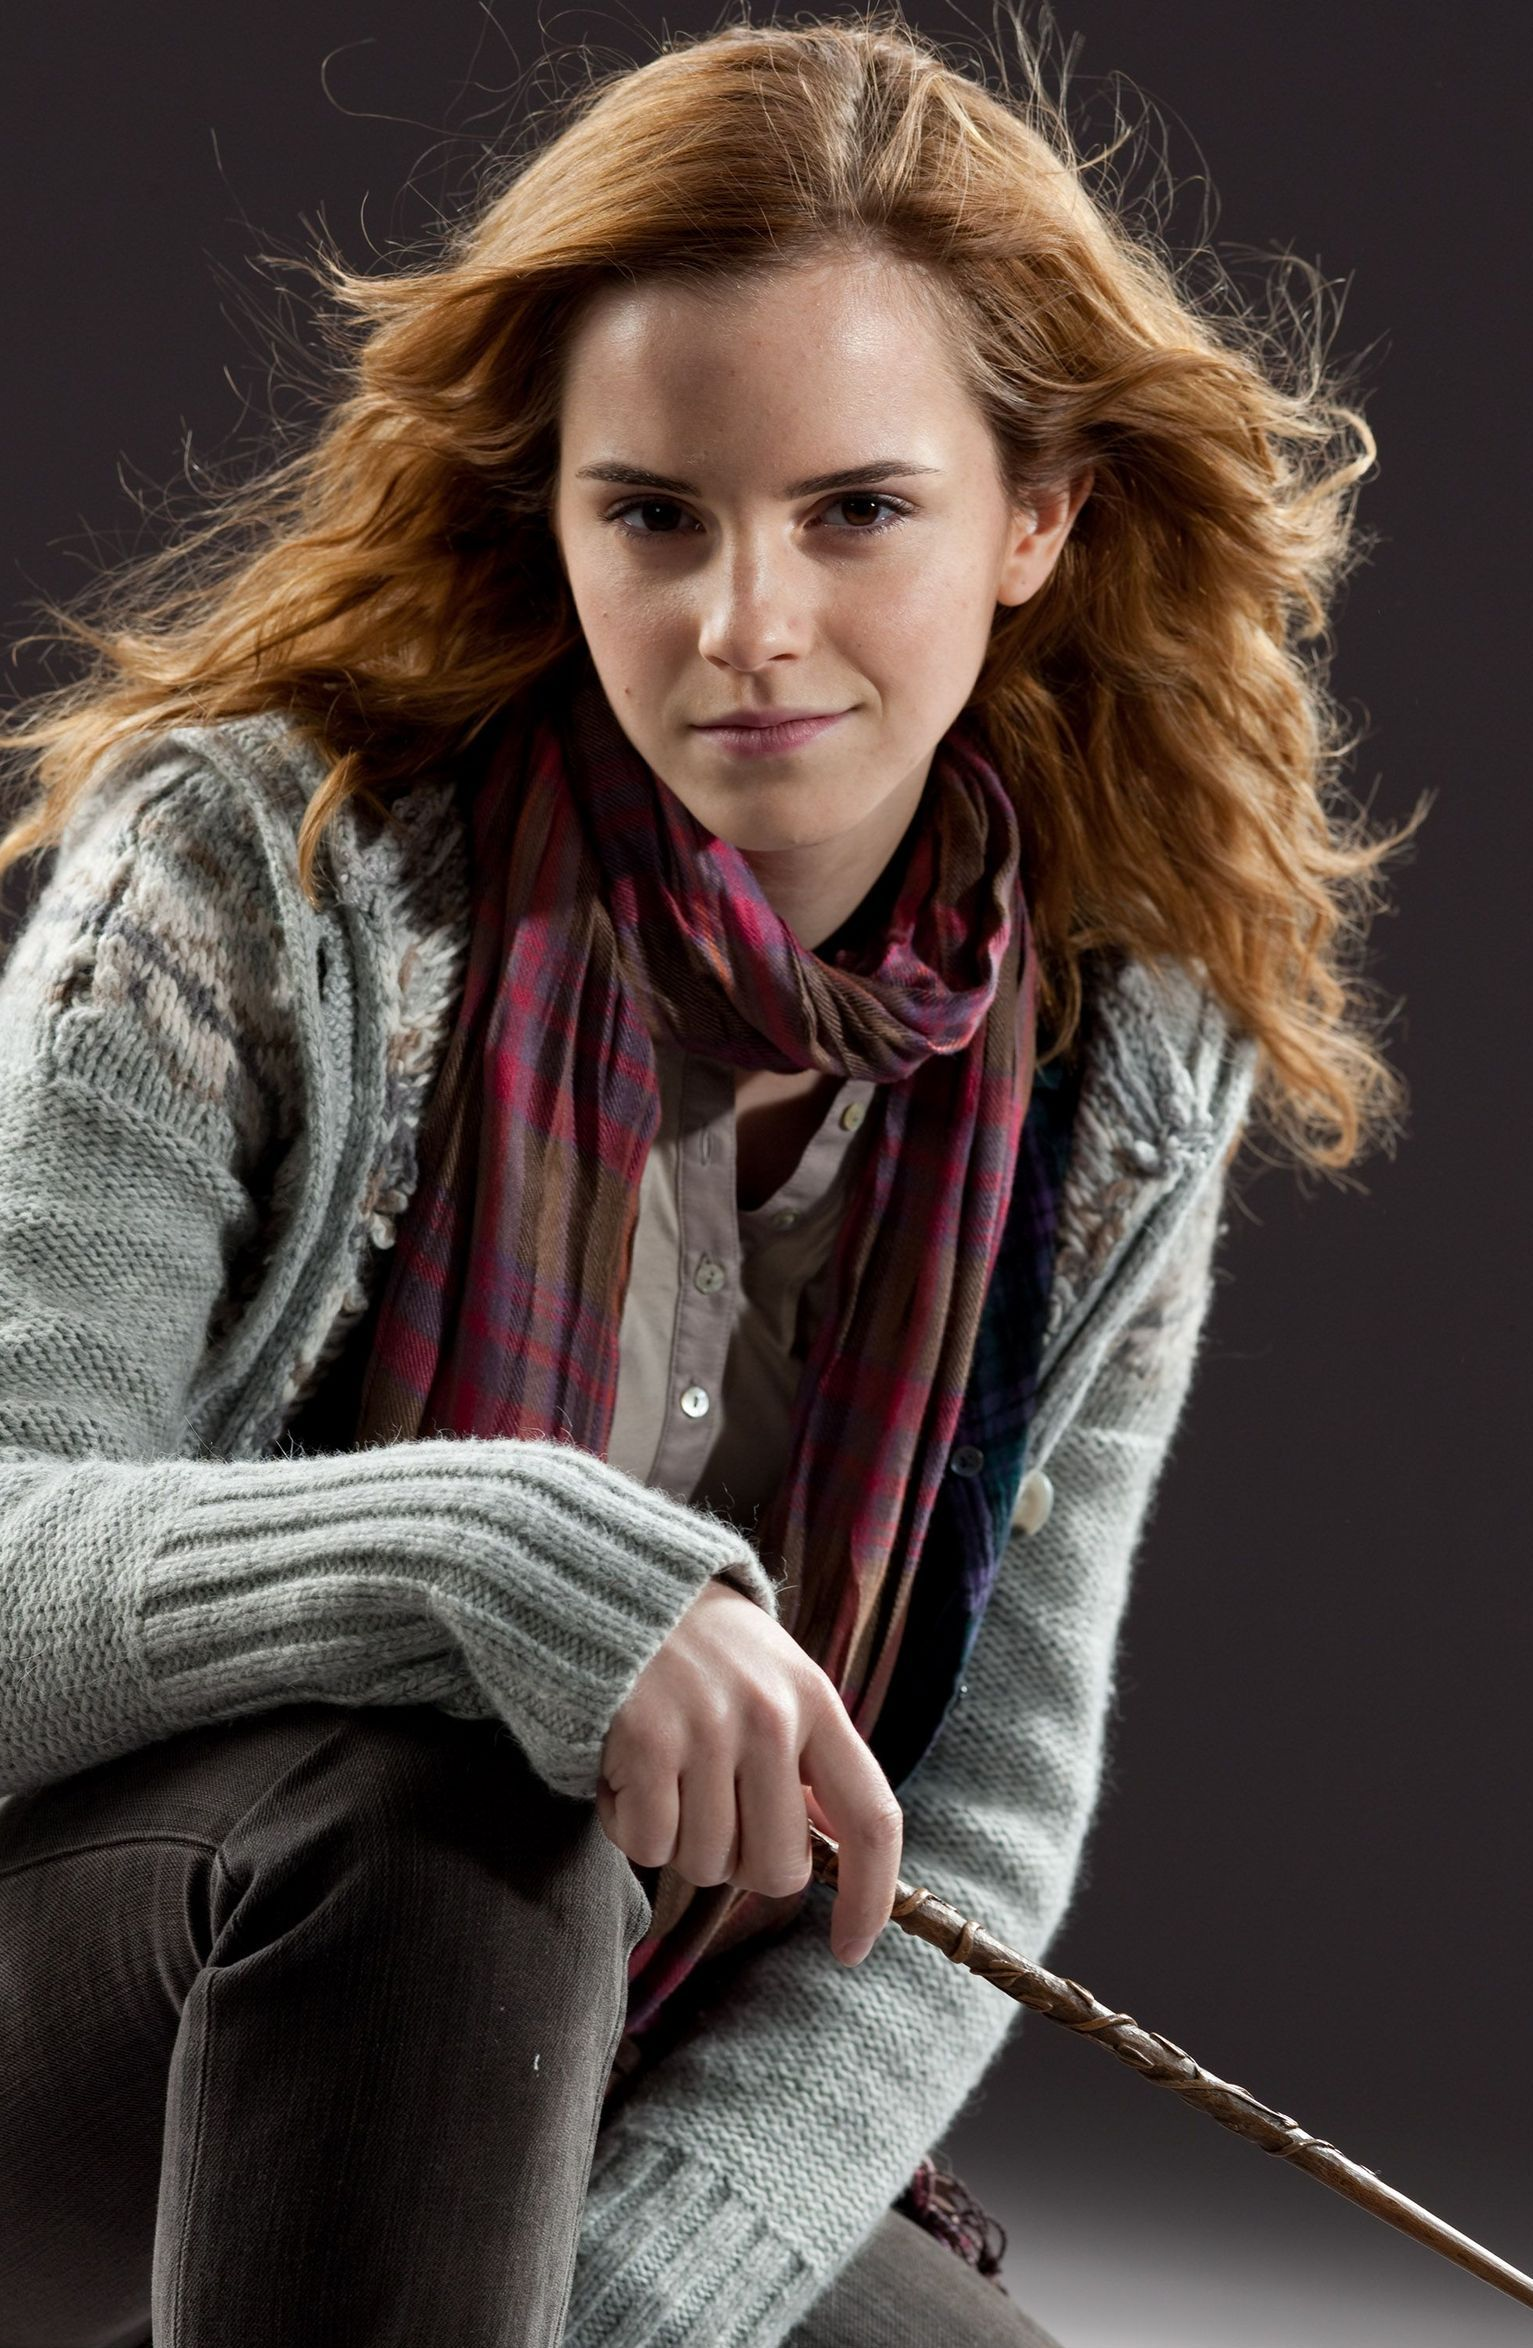 Hermione granger harry potter wiki fandom powered by wikia for Harry potter and the deathly hallows wand